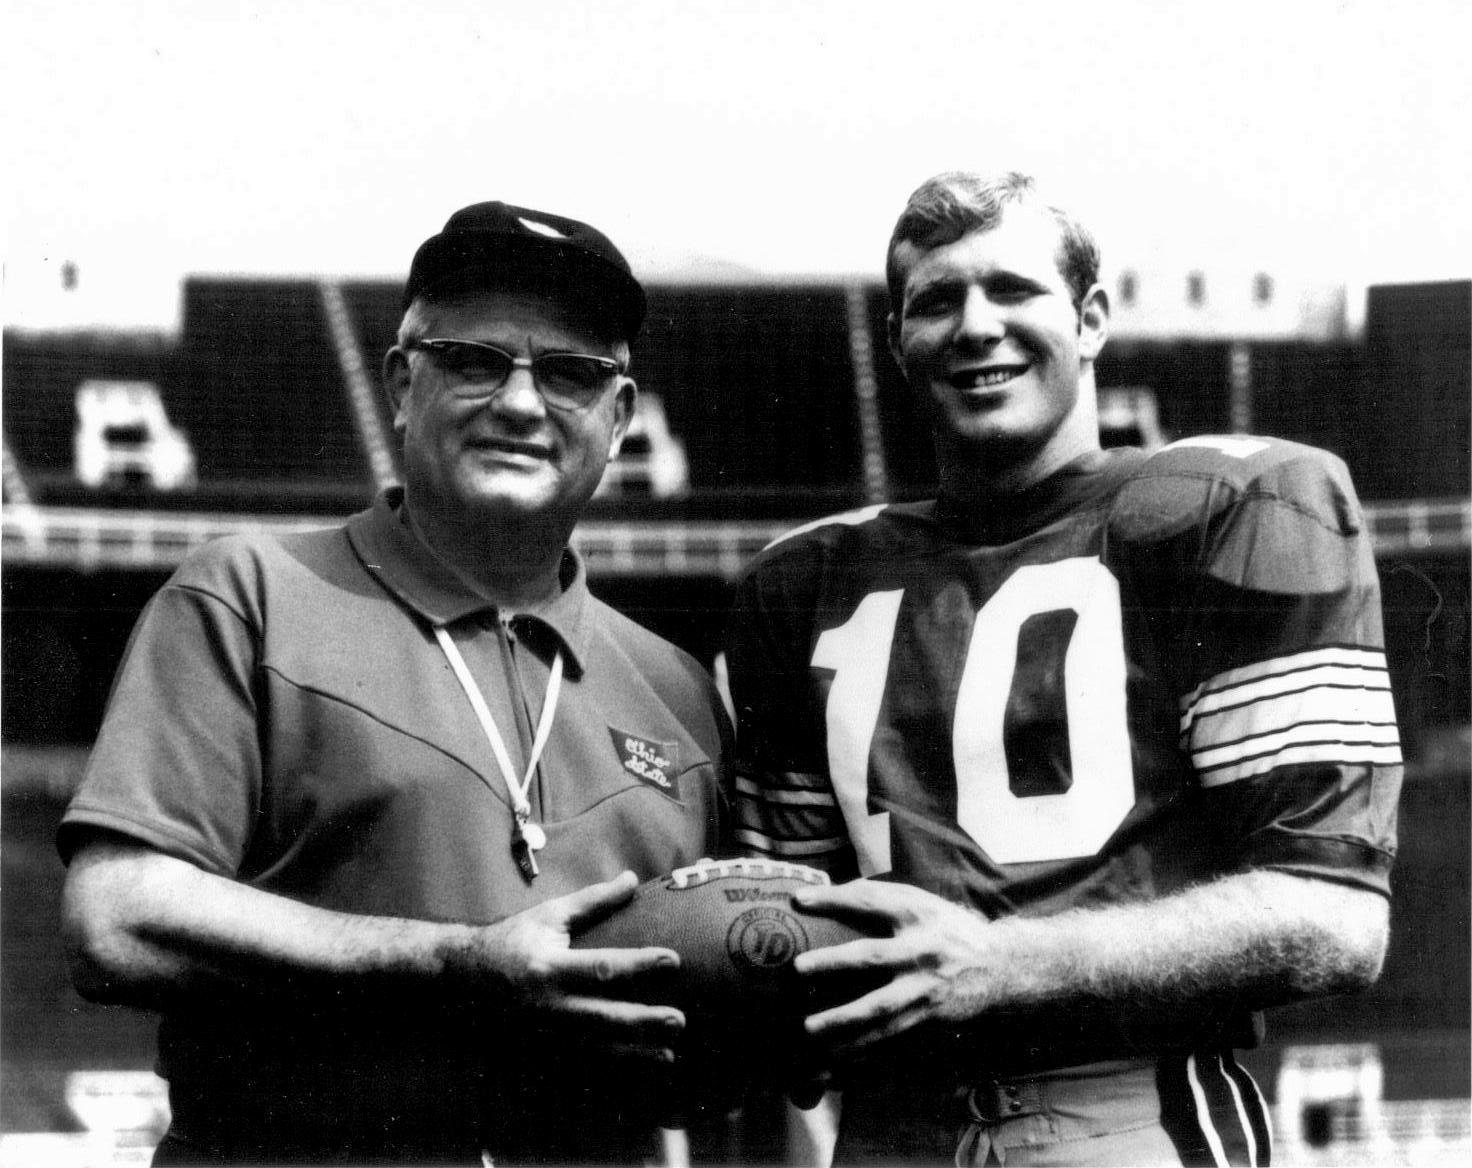 Woody Hayes and Rex Kern Vintage 1968 Ohio State 8x10 Photo - Mint Condition